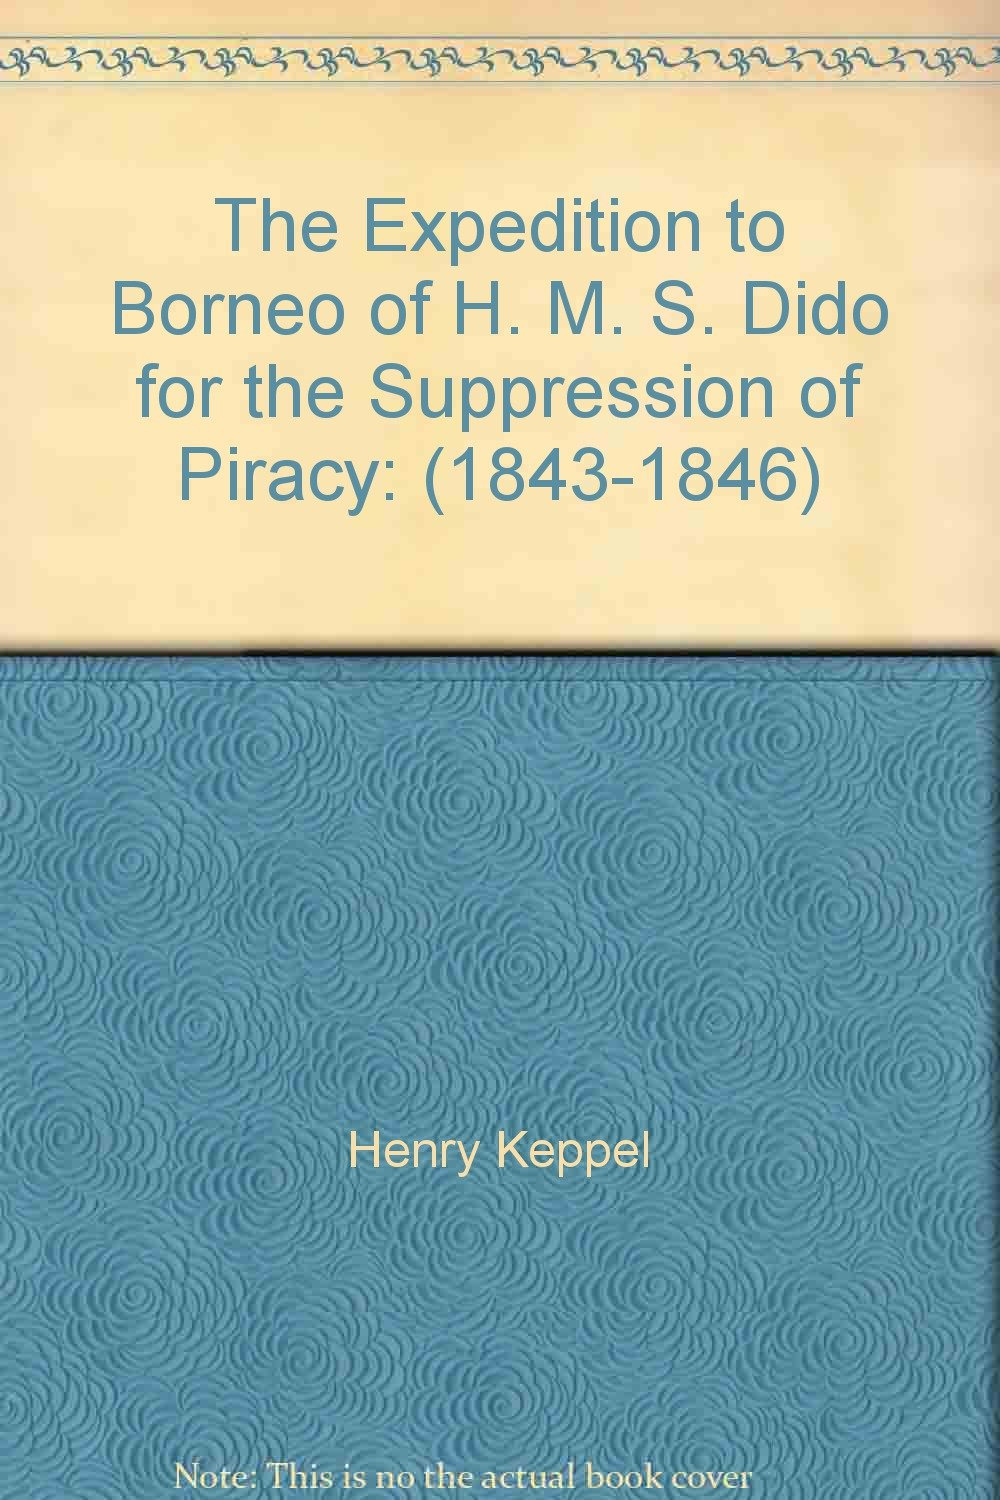 The Expedition to Borneo of H. M. S. Dido for the Suppression of Piracy: (1843-1846) PDF